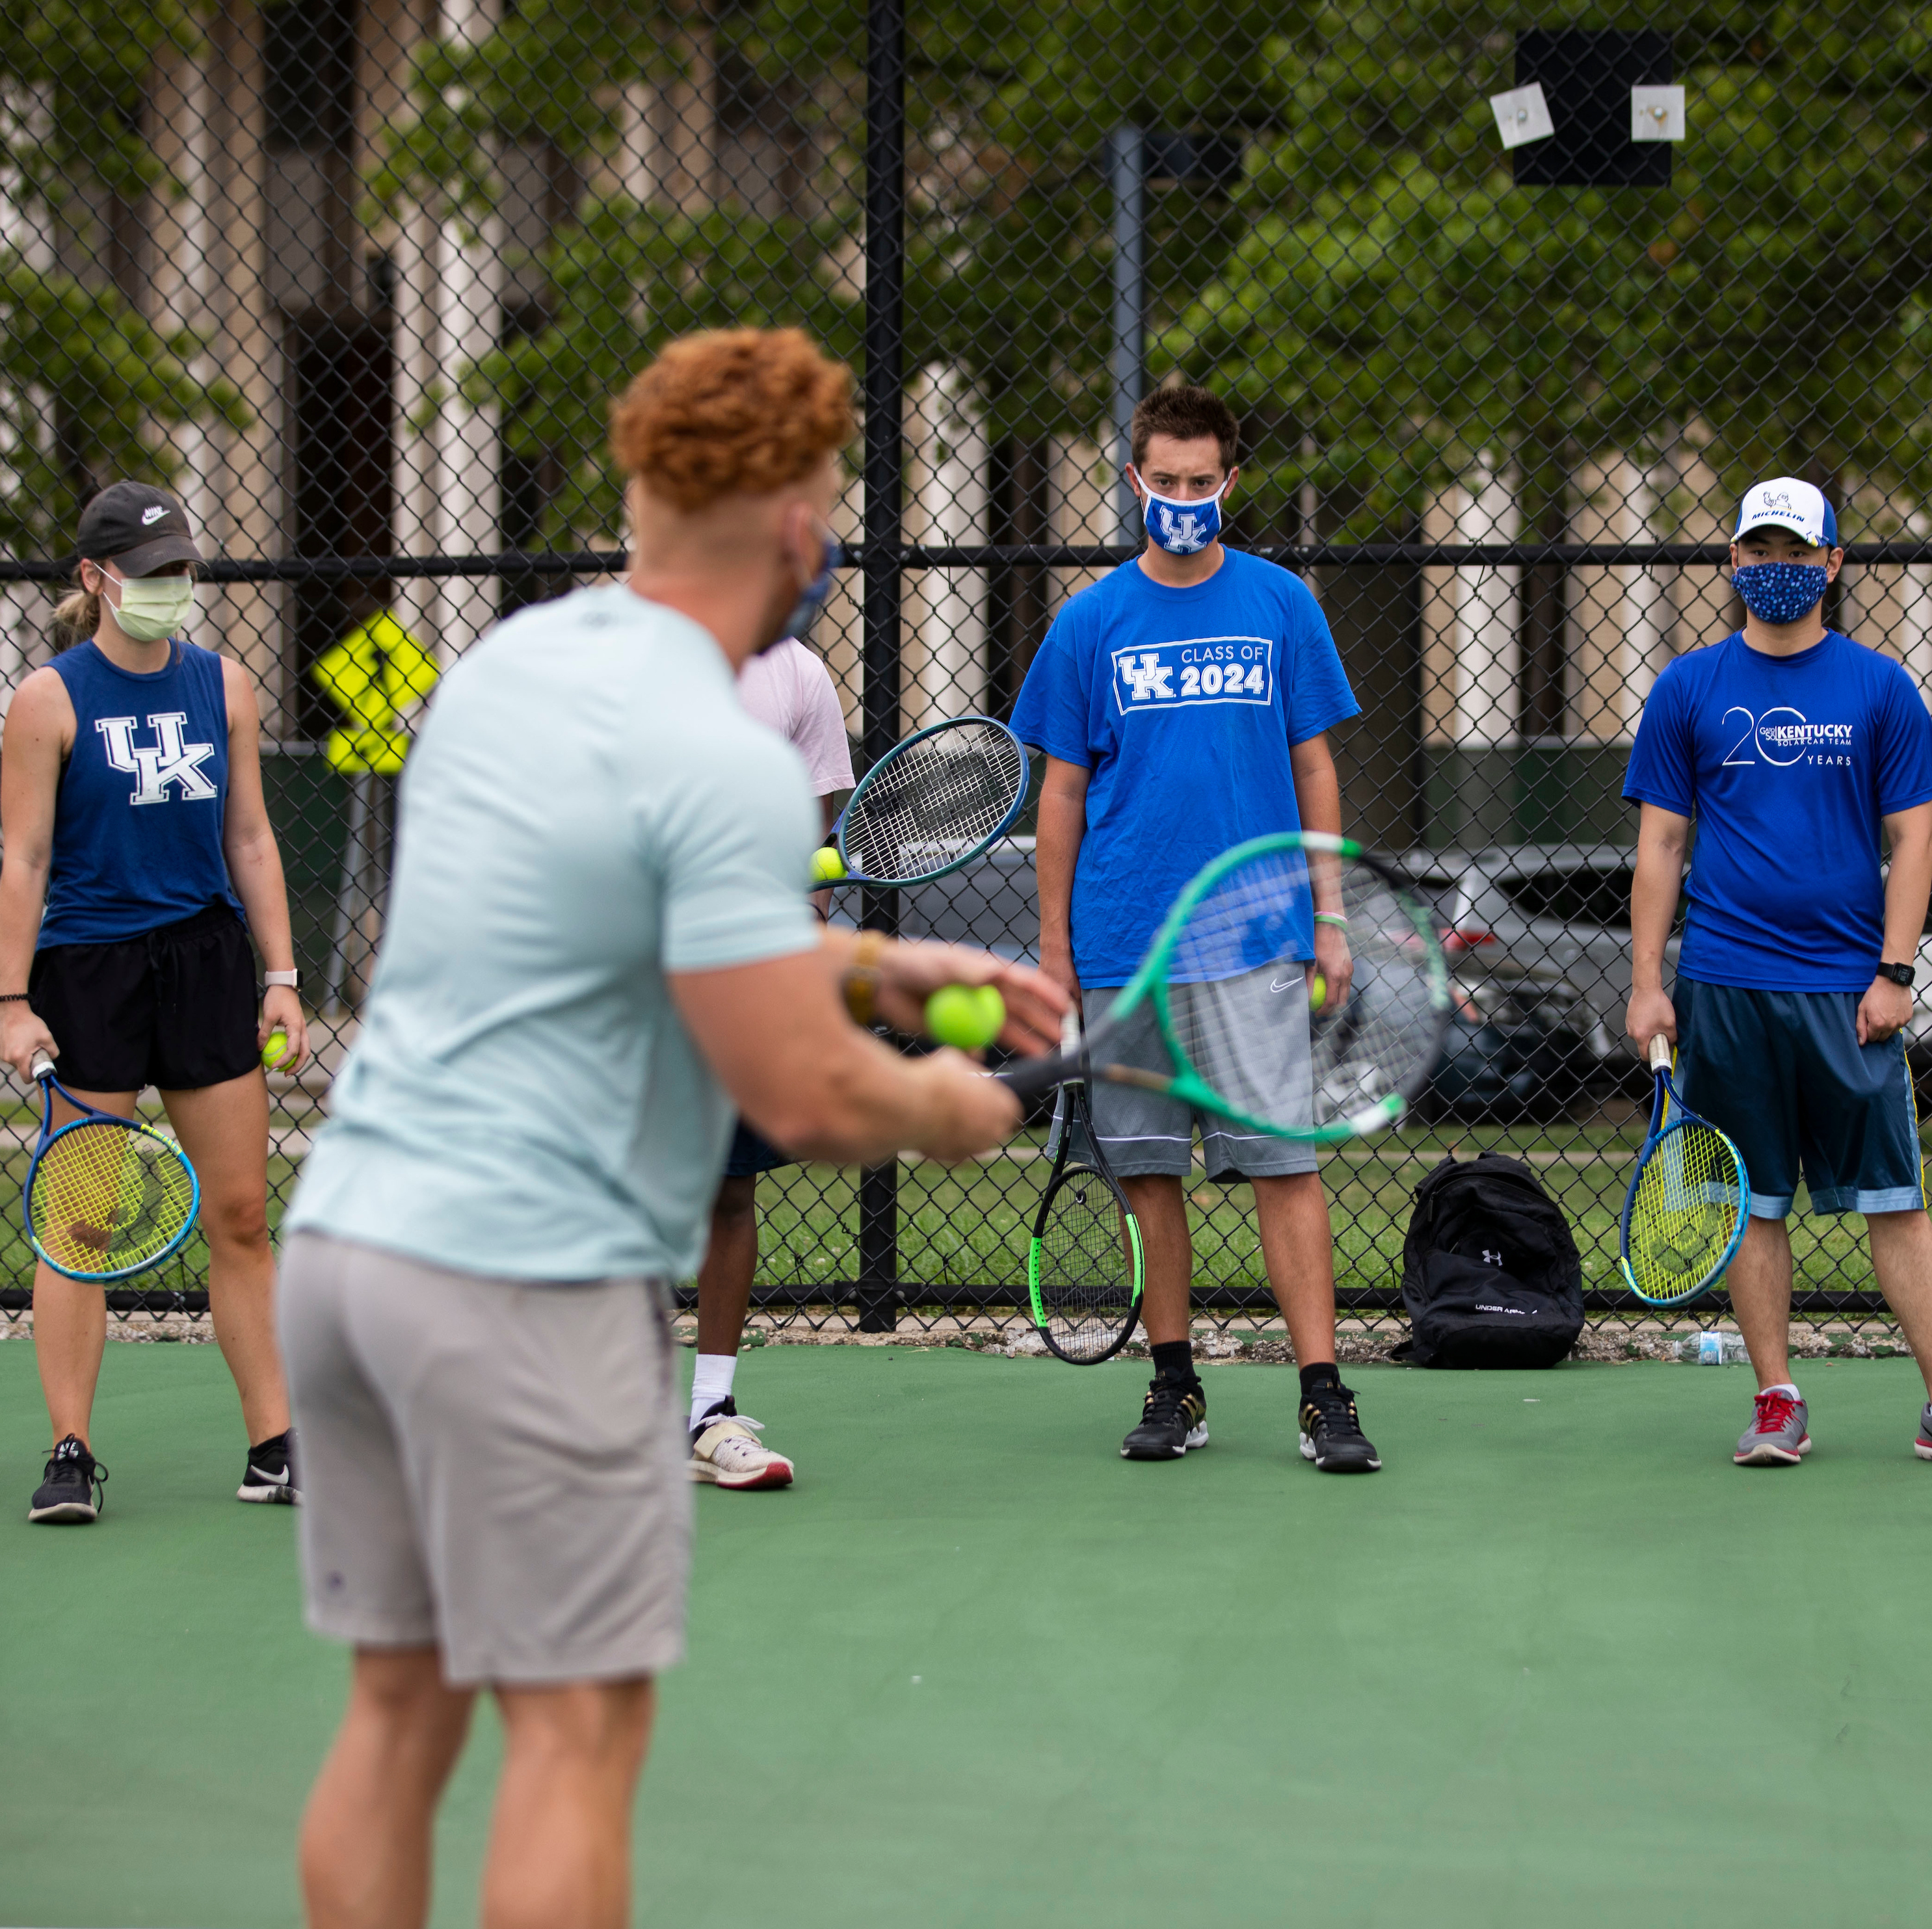 Tennis instructor teaching class